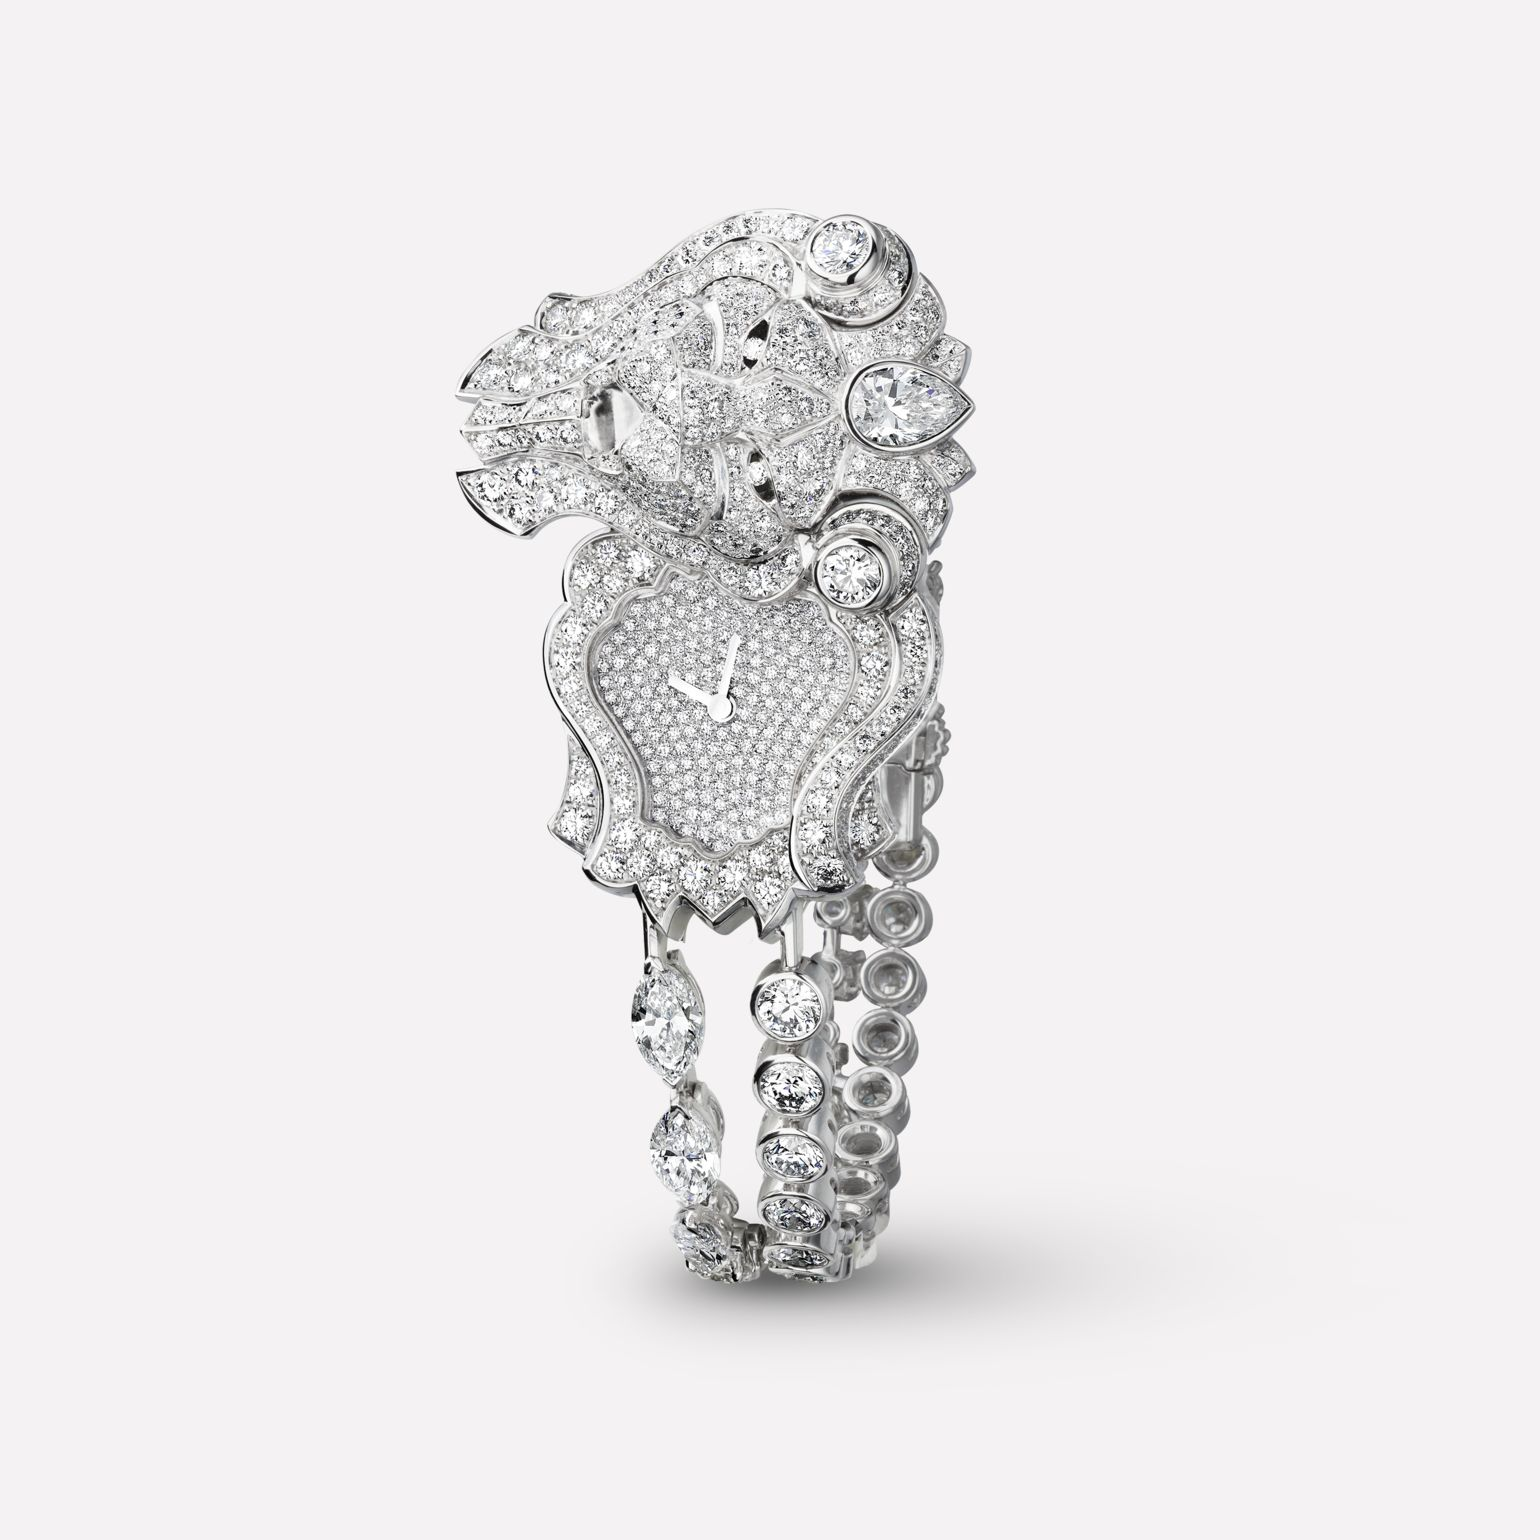 Sous le Signe du Lion Jewellery Watch Secret watch with lion motif in 18K white gold and diamonds with diamond bracelet